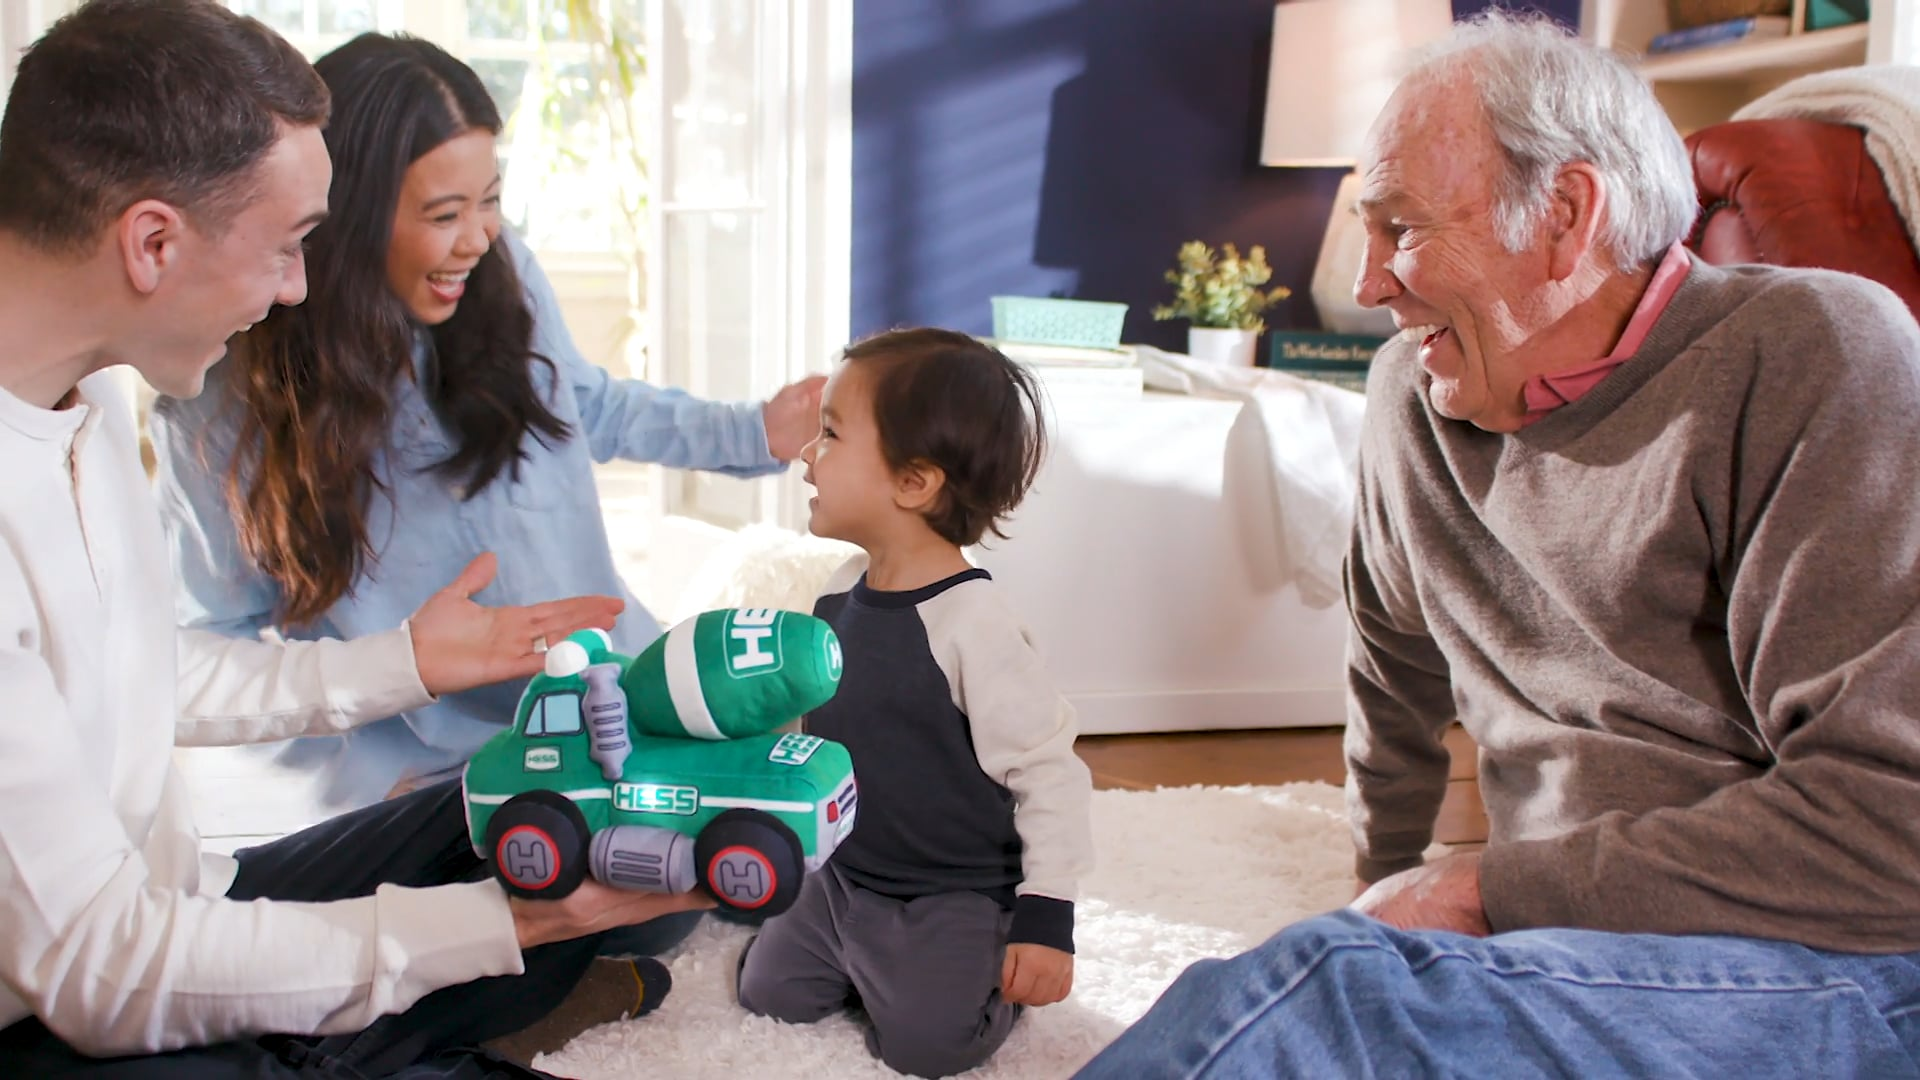 HESS TOY TRUCK 2021